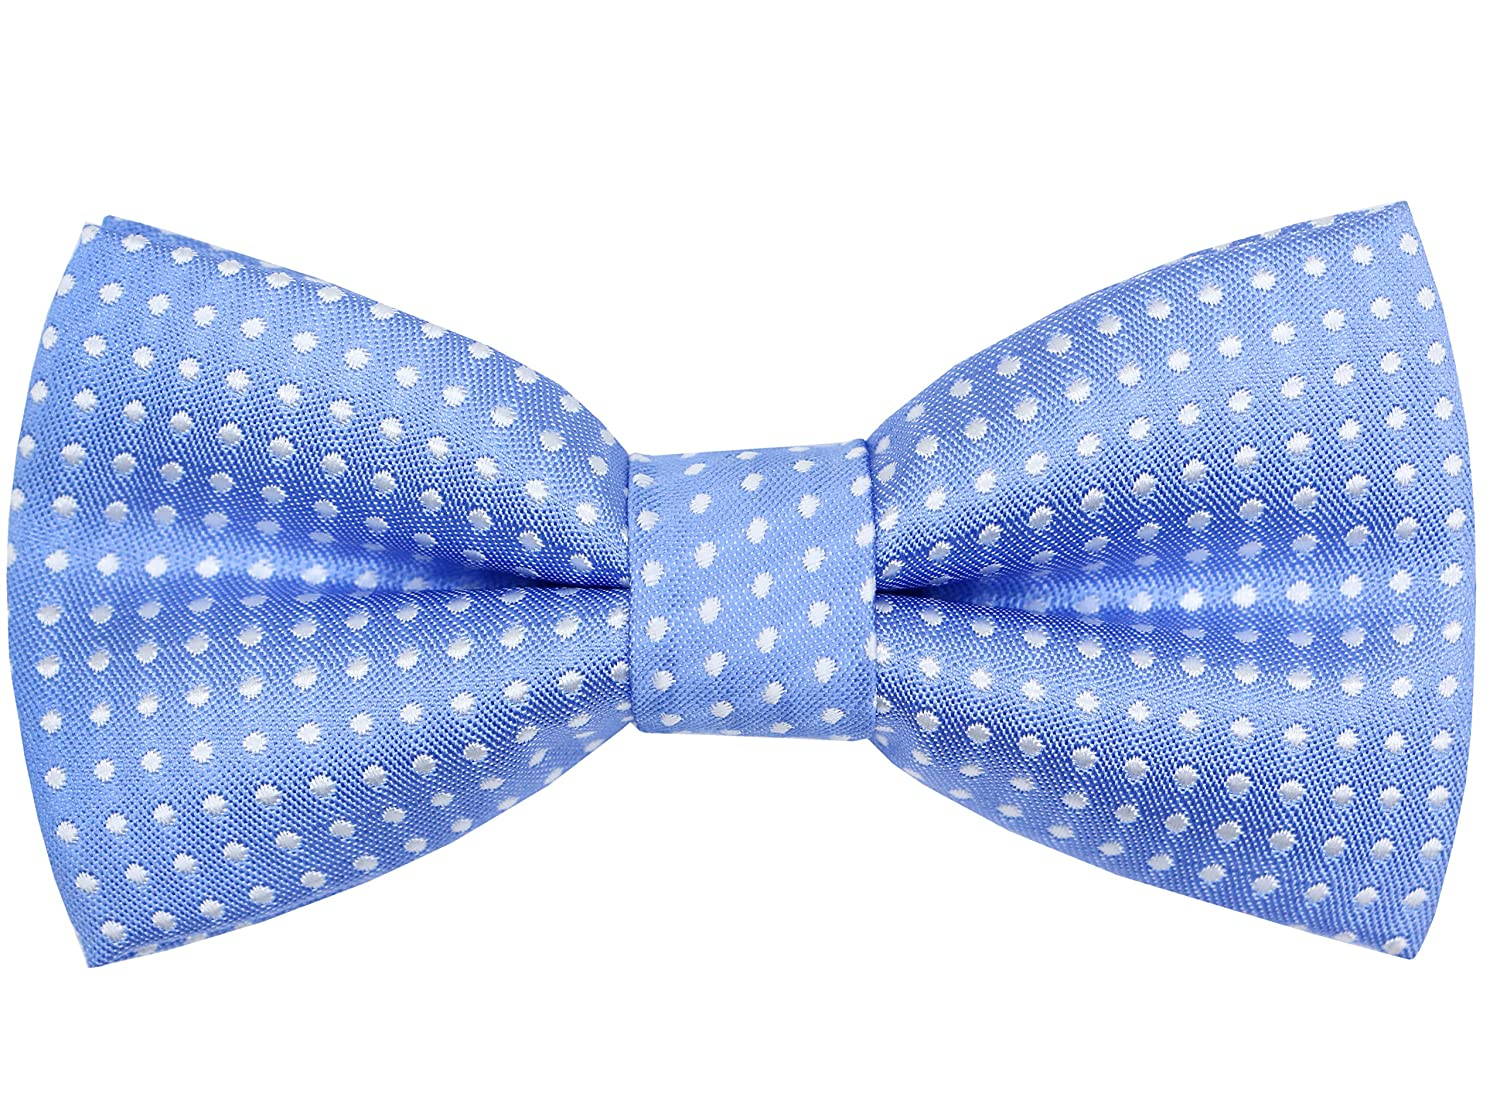 OCIA Pre-tied Bow Tie for Boys Adjustable Polka Dots Bowtie for Toddler Kids OASY21